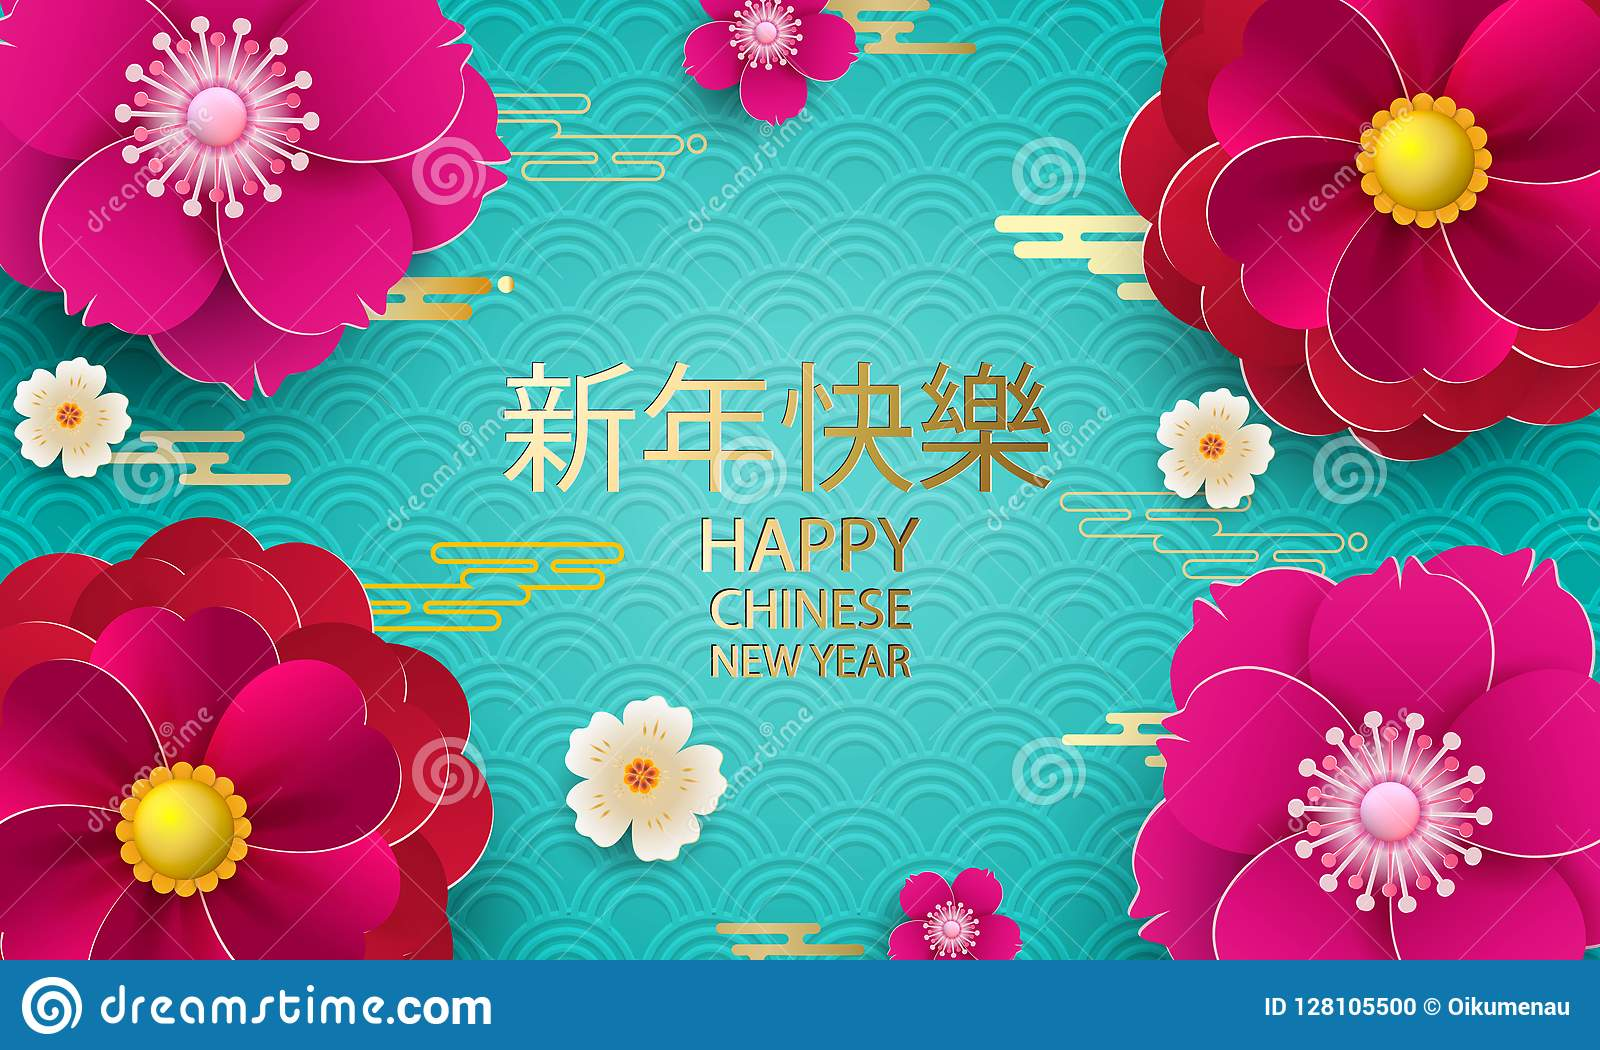 Happy New Year 2019 Chinese New Year Greeting Card Poster Flyer Or